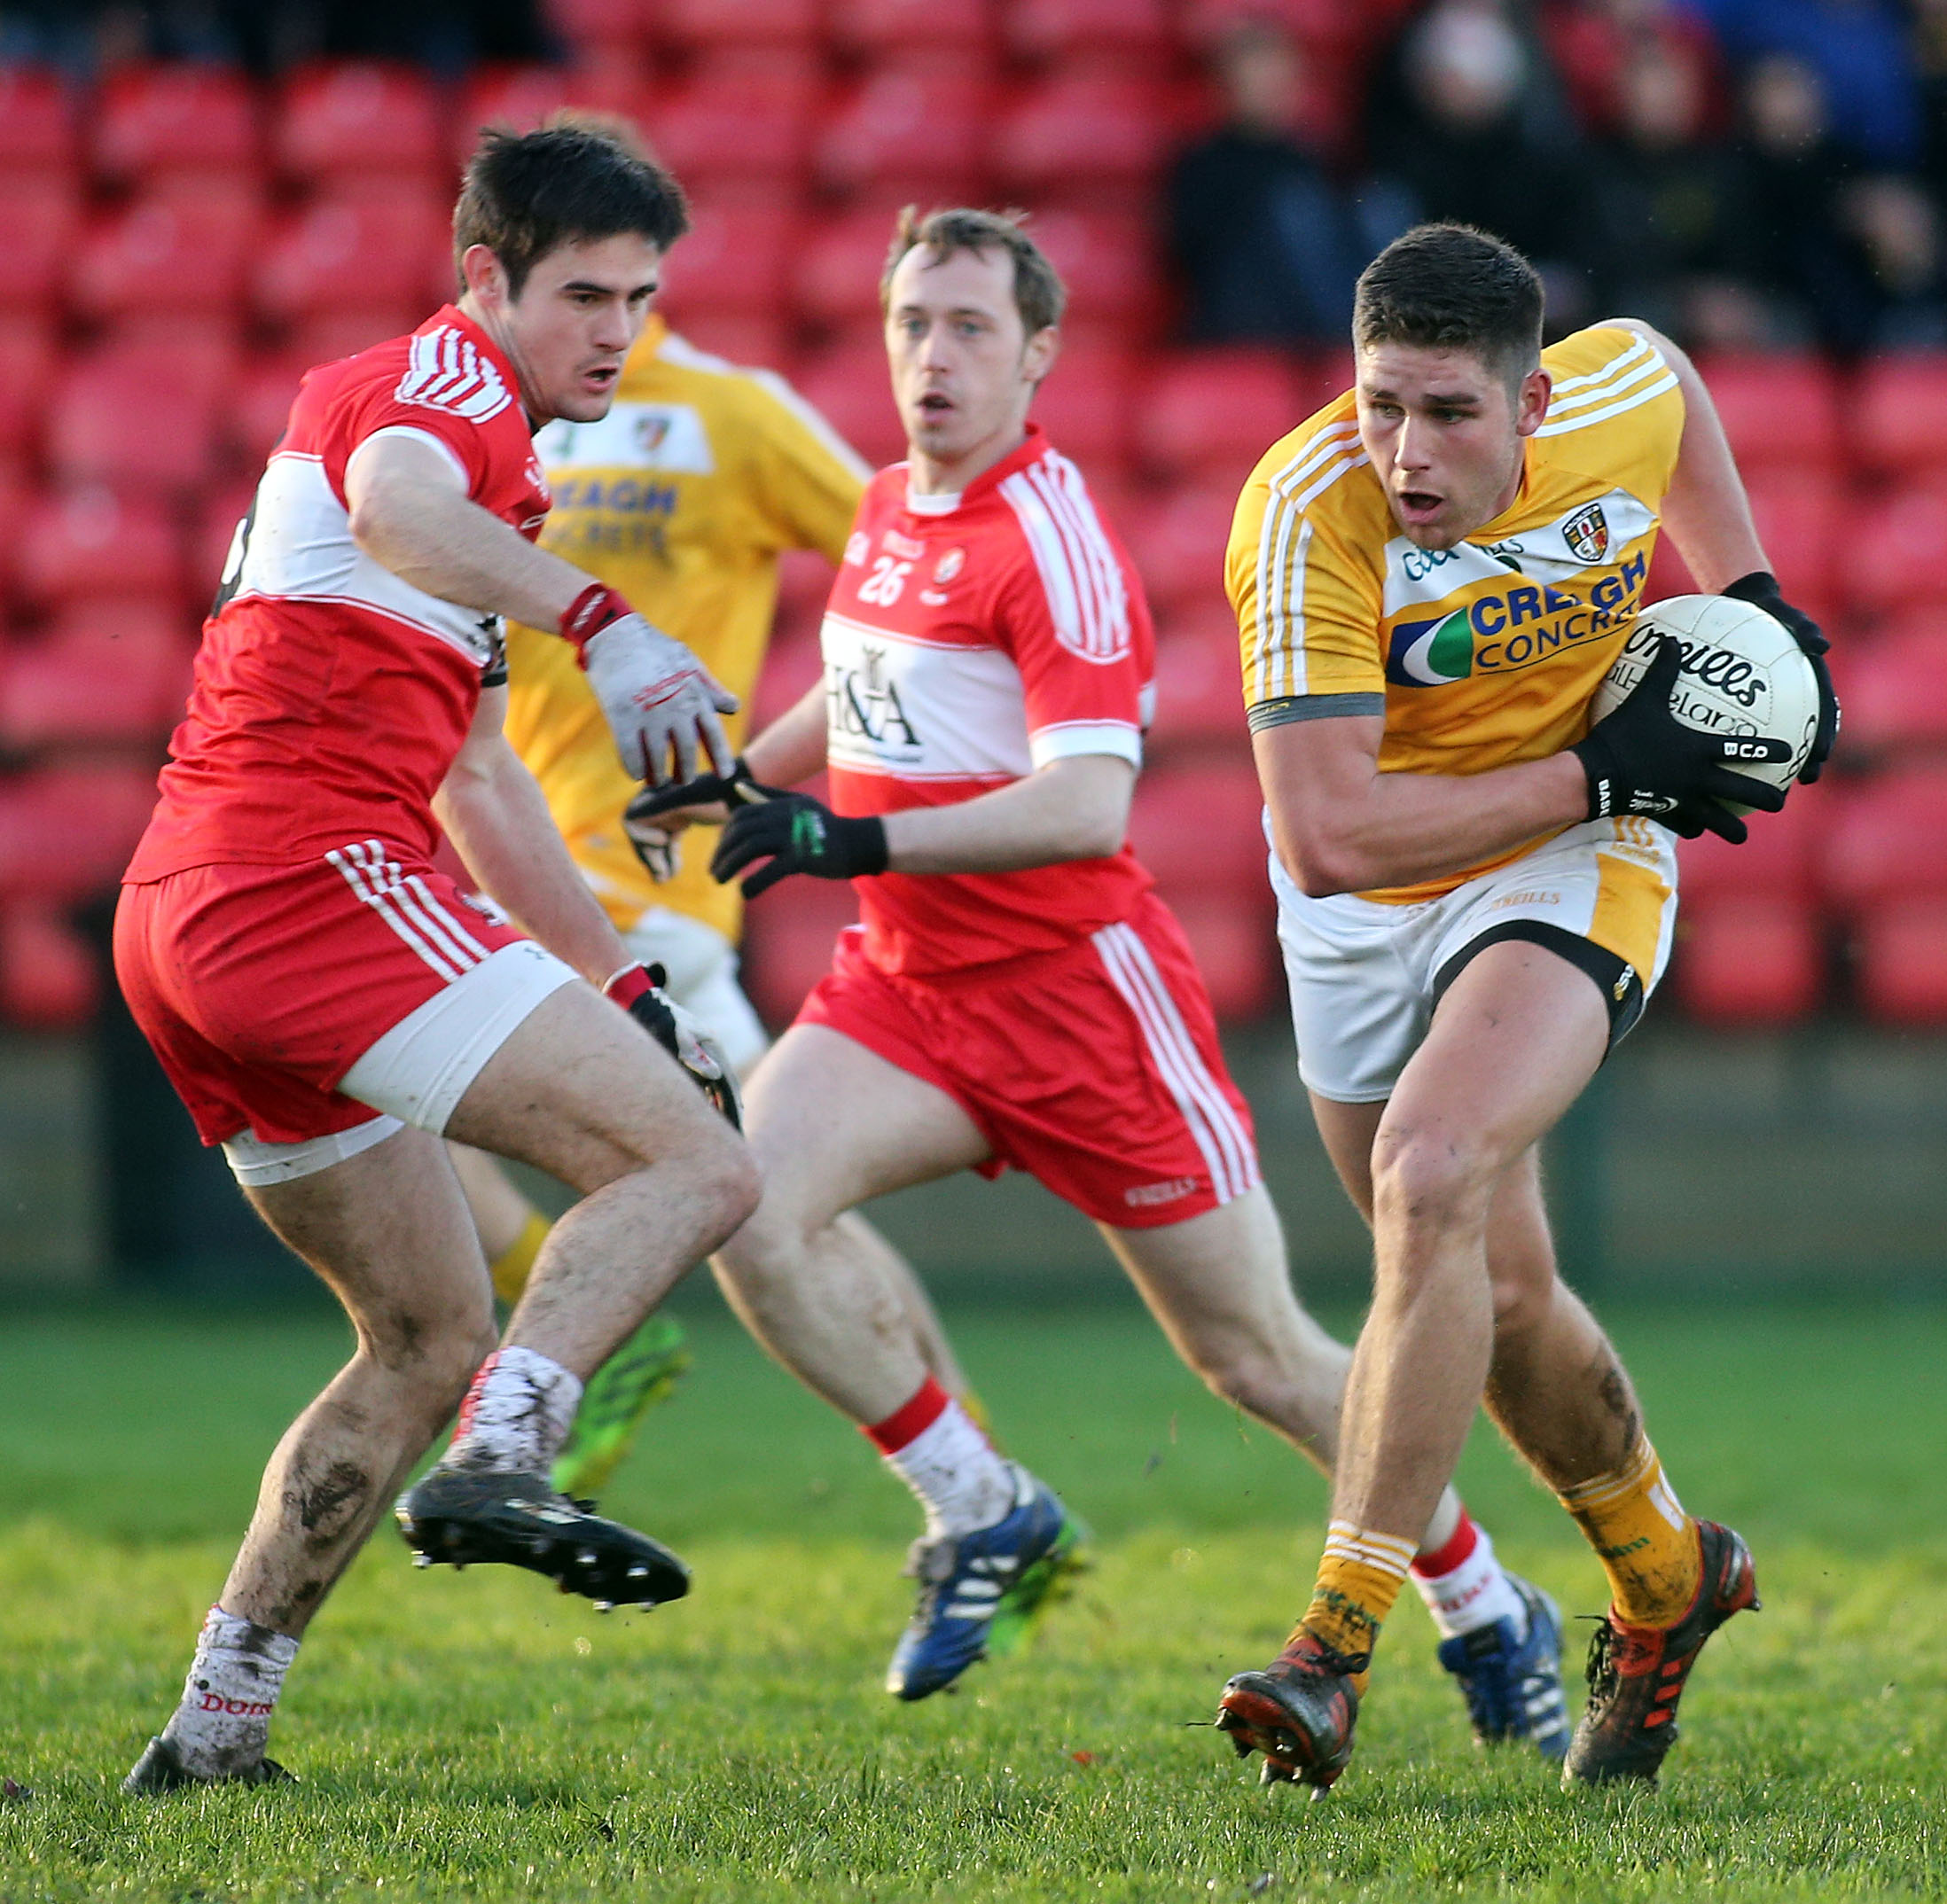 Antrim's Jack Dowling, pictured in action against Derry's Chrissy McKaigue, is hoping to nail down a starting slot for the Saffrons this year and is hoping to help his side claim their first league points this Sunday when they host Sligo in Corrigan Park